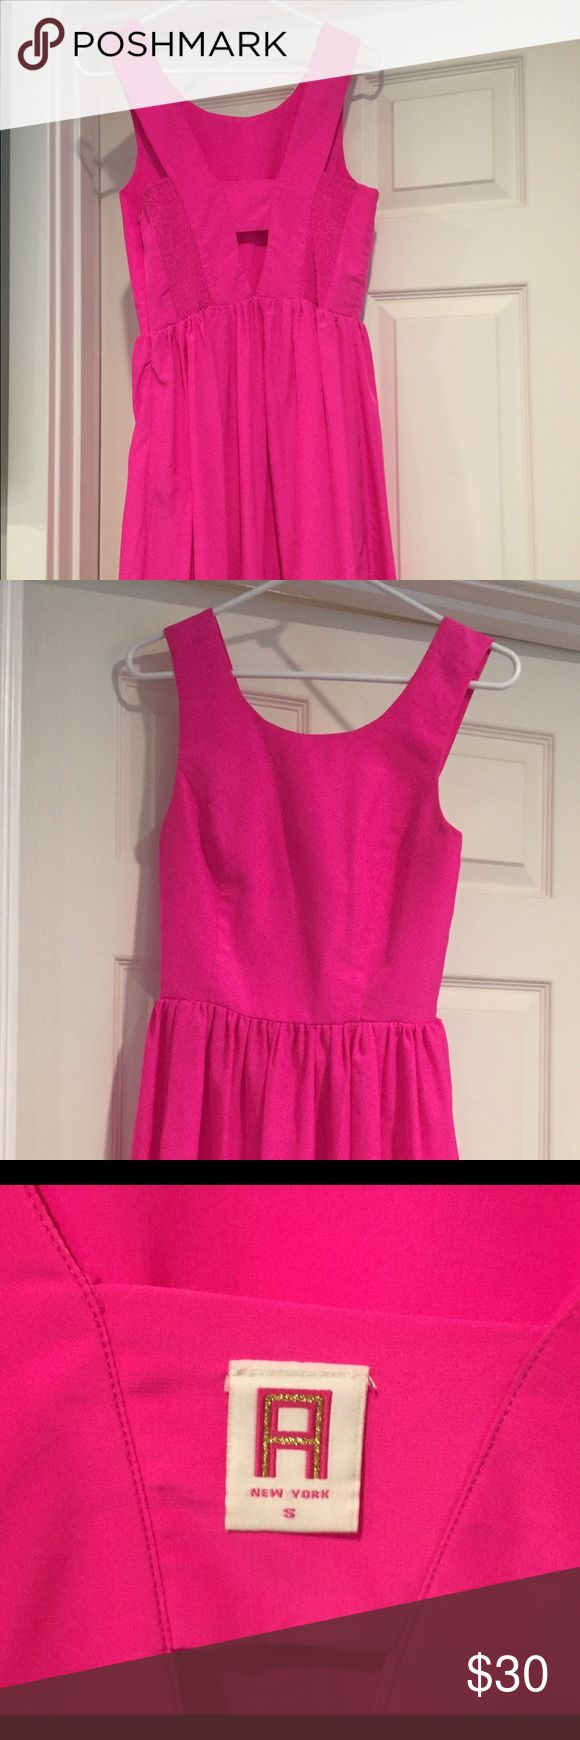 Hot pink sundress Airy and light material.  Only worn once or twice. Adriana New York Dresses Midi